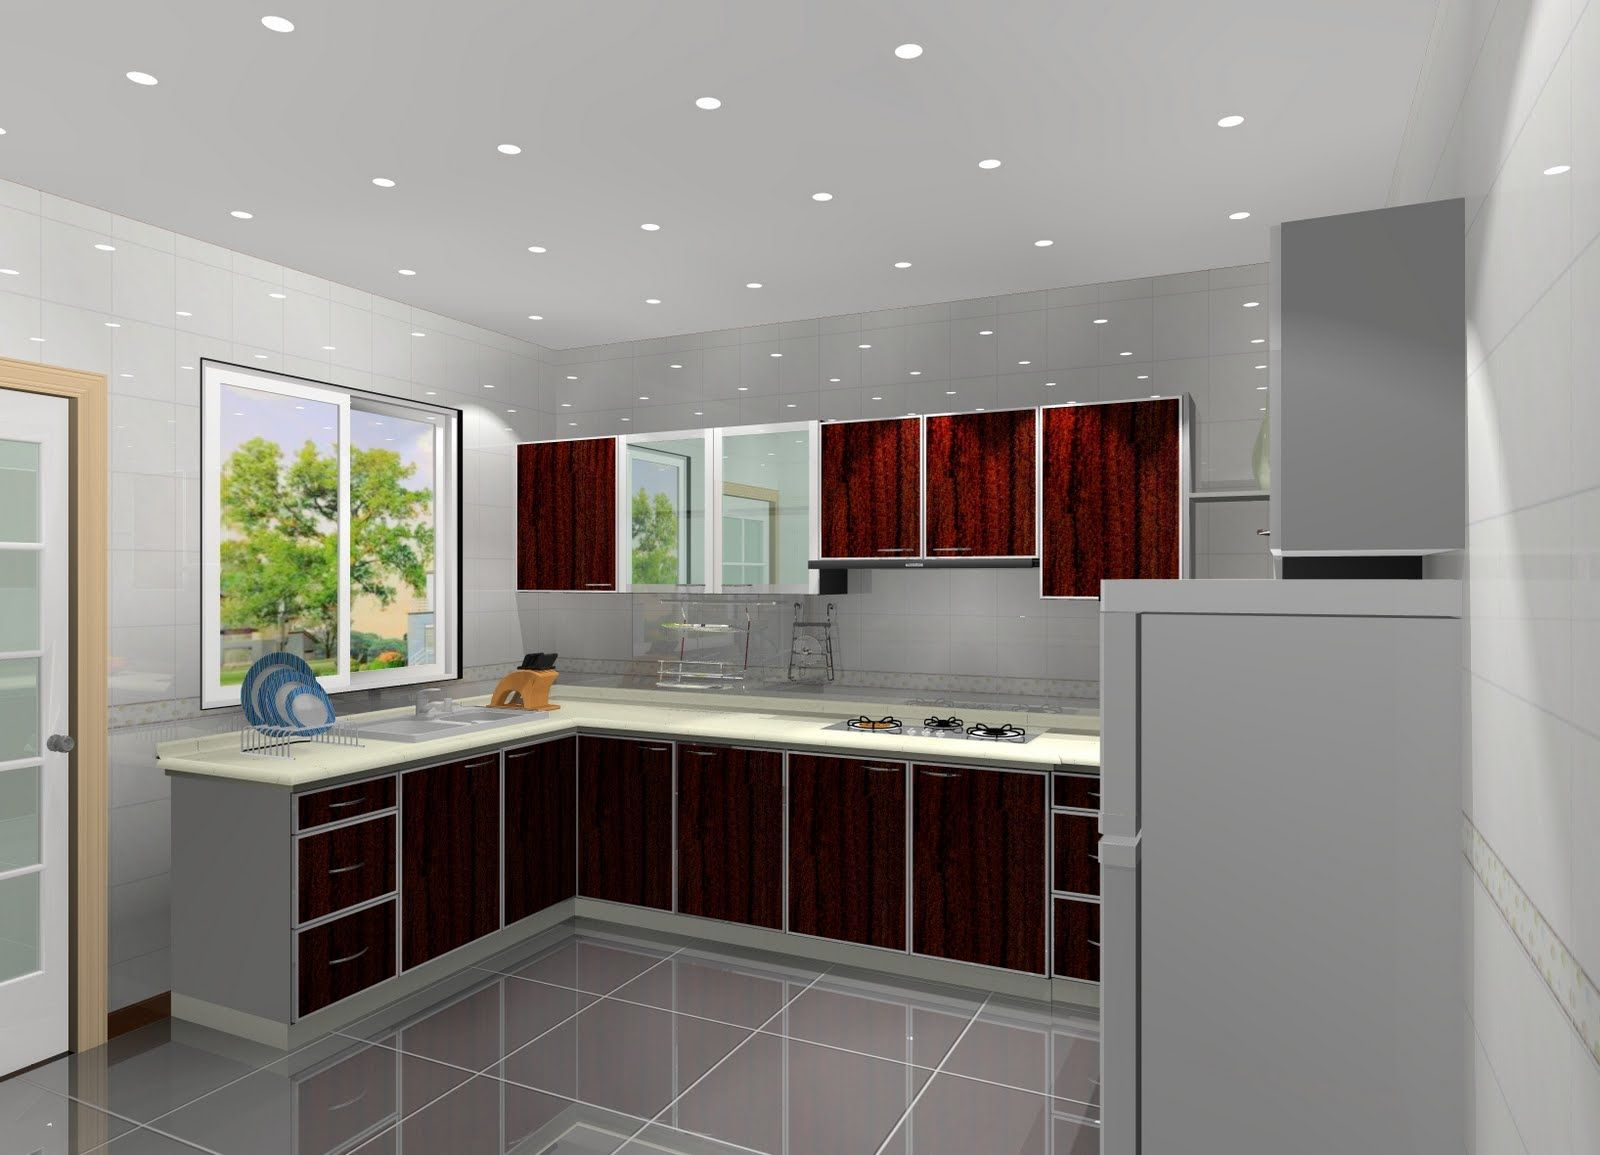 Are you looking kitchencabinet for your kitchen if yes zhkitchen provide the best quality kitchen cabinet with affordable price